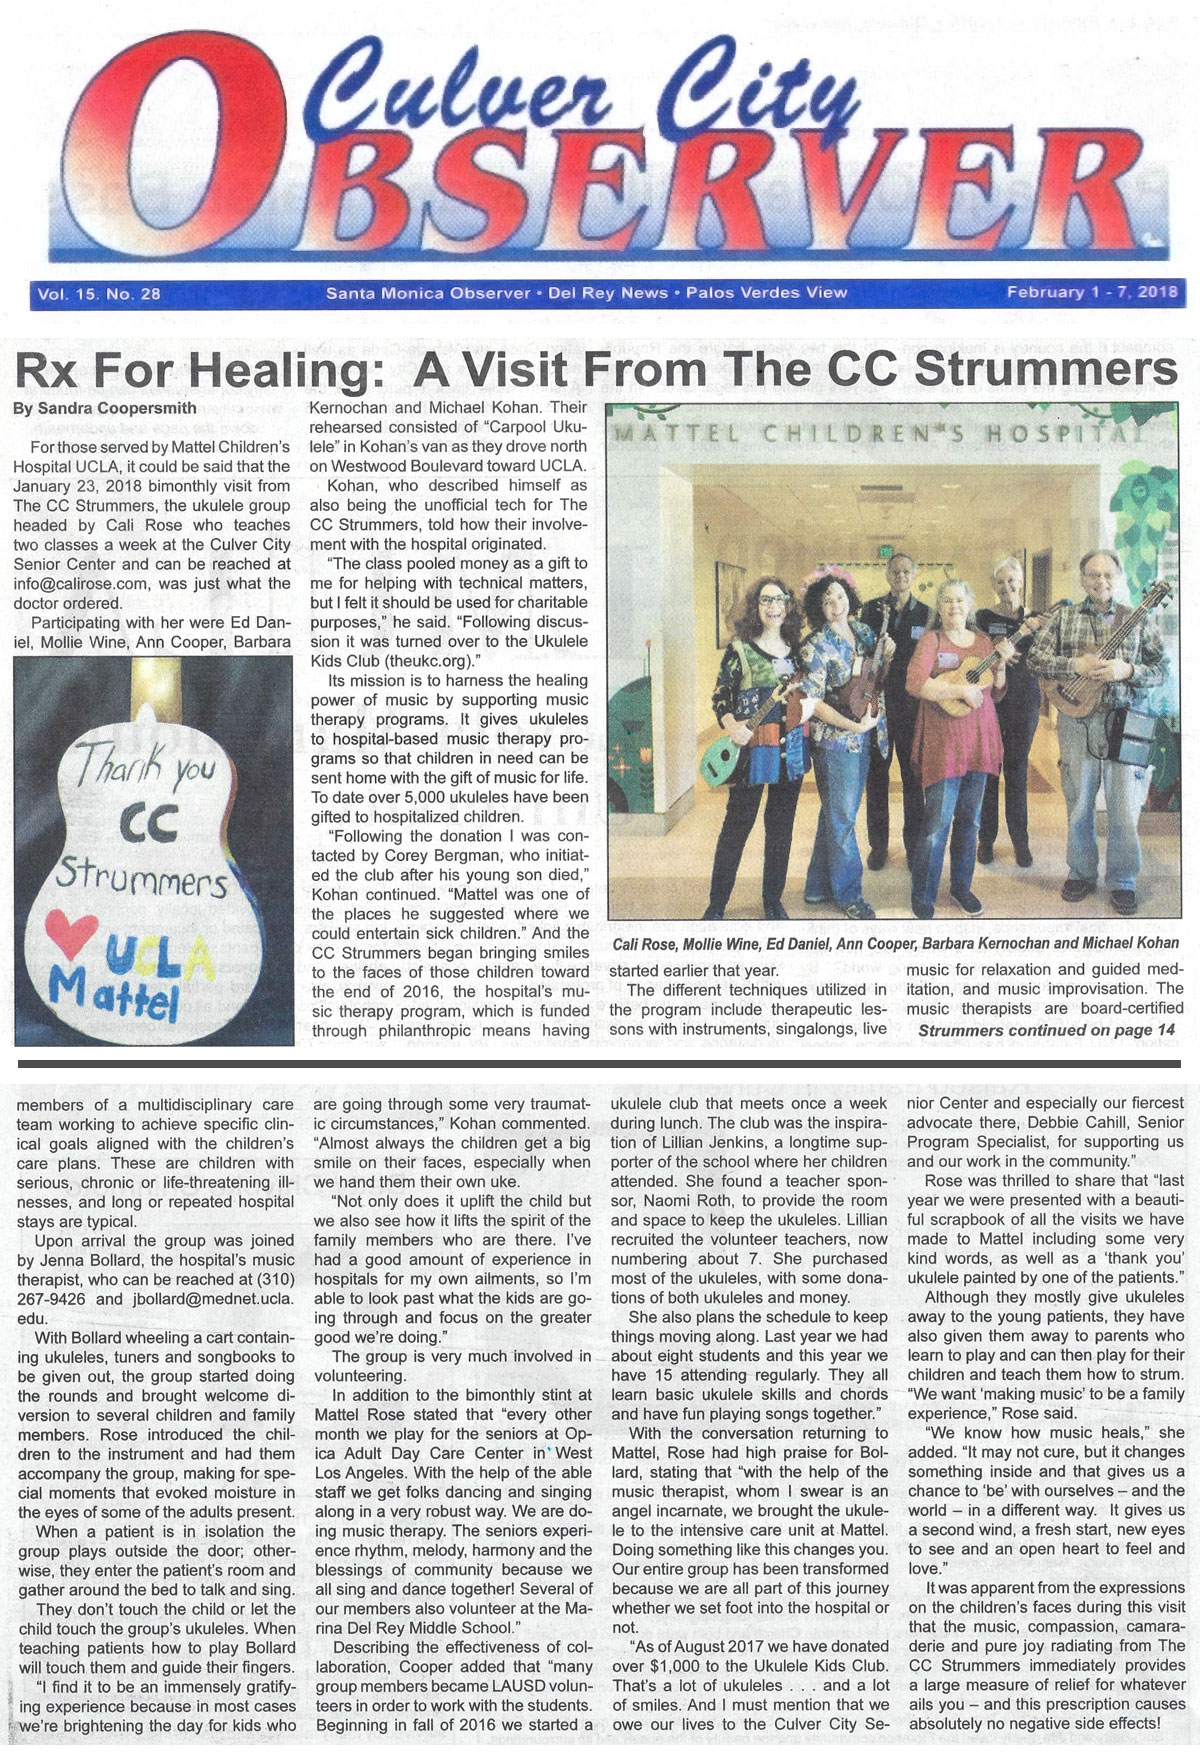 newspaper article featuring Cali and The CC Strummers